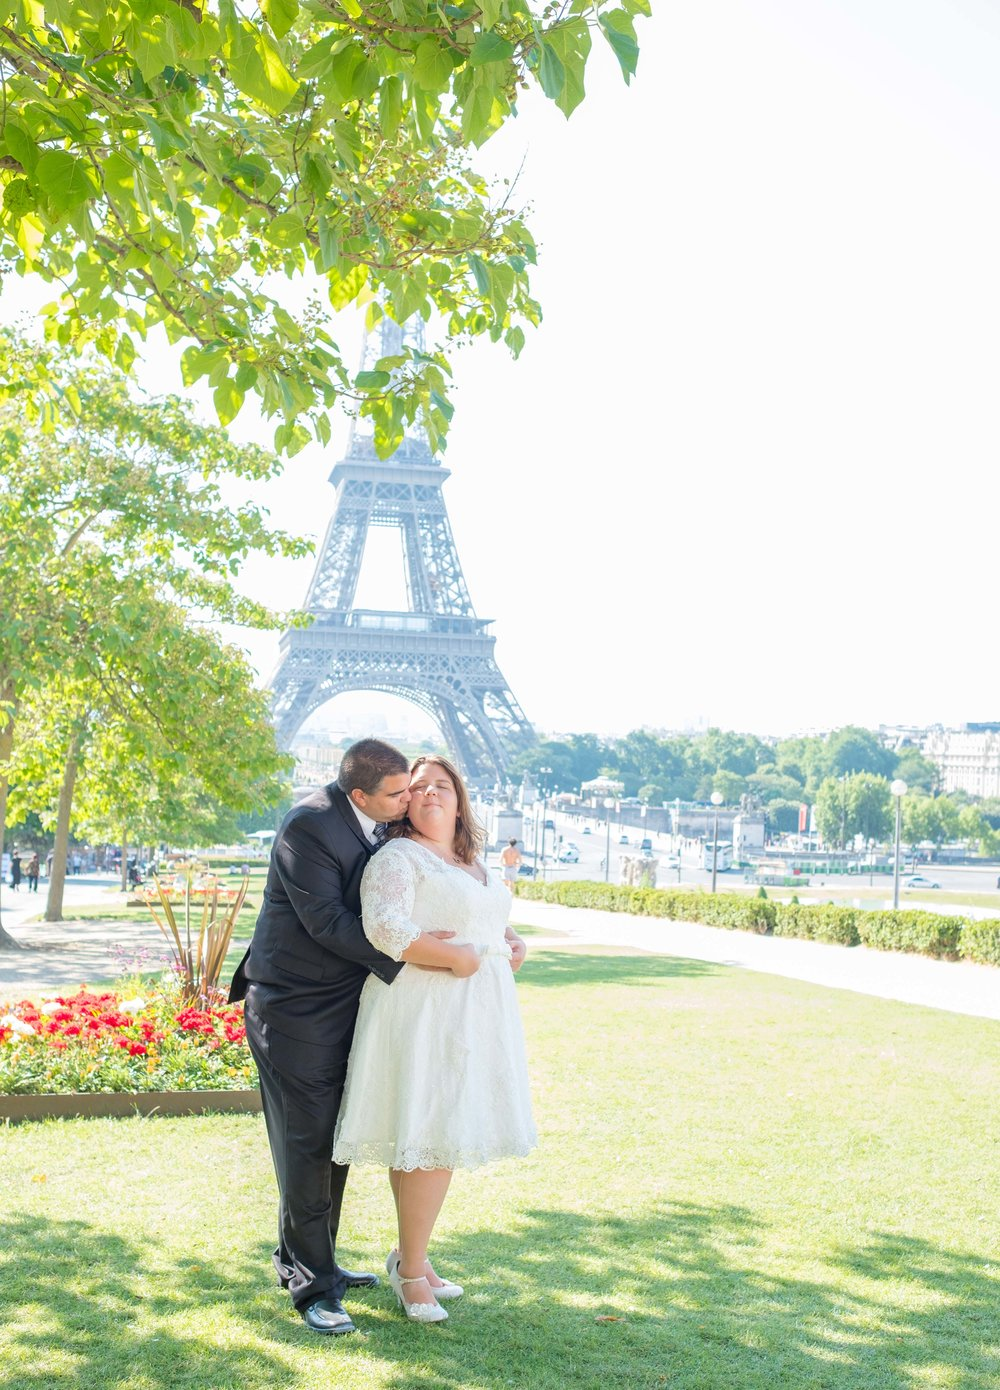 Newlyweds kissing near the Eiffel Tower in summer